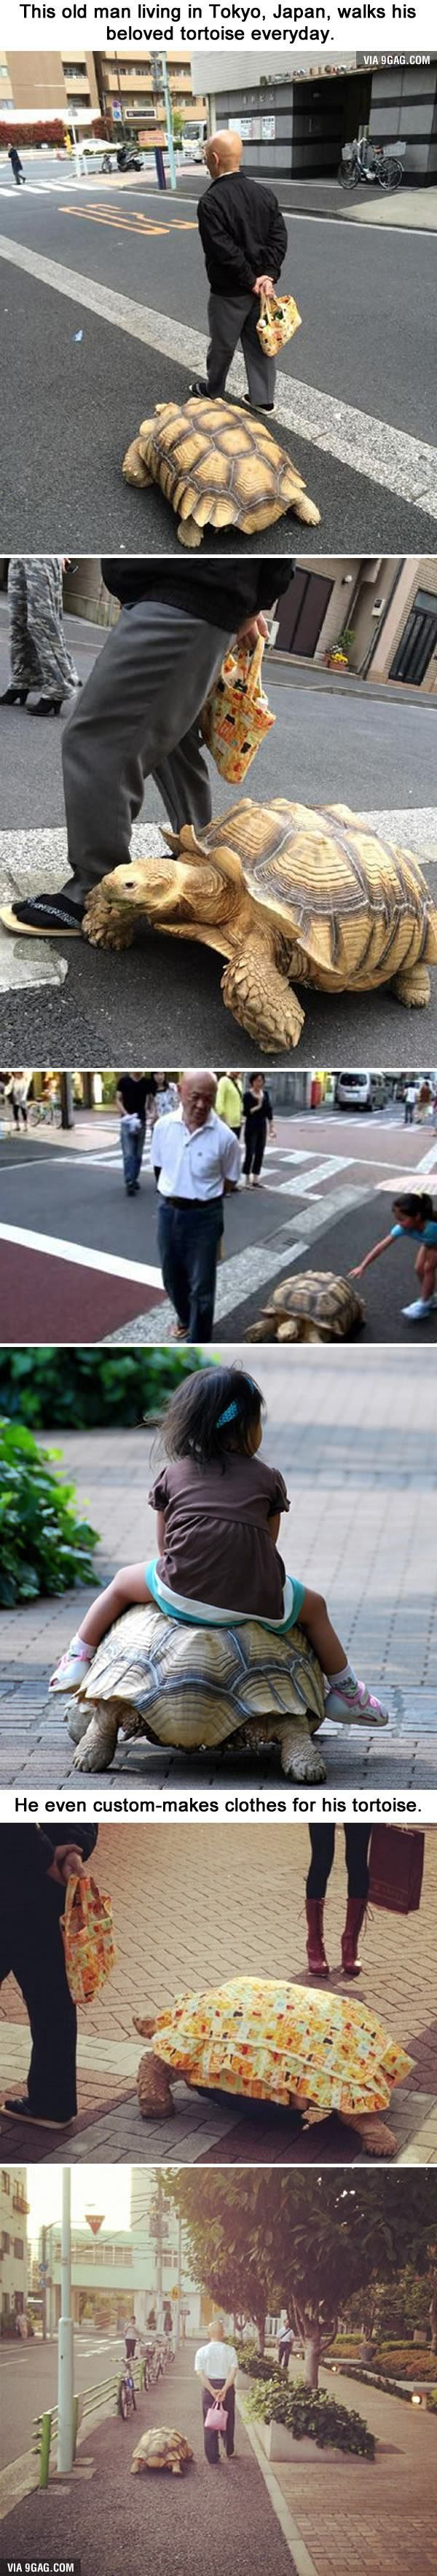 Best Beautiful Creatures And Animals Images On Pinterest - Man walks pet tortoise through tokyo